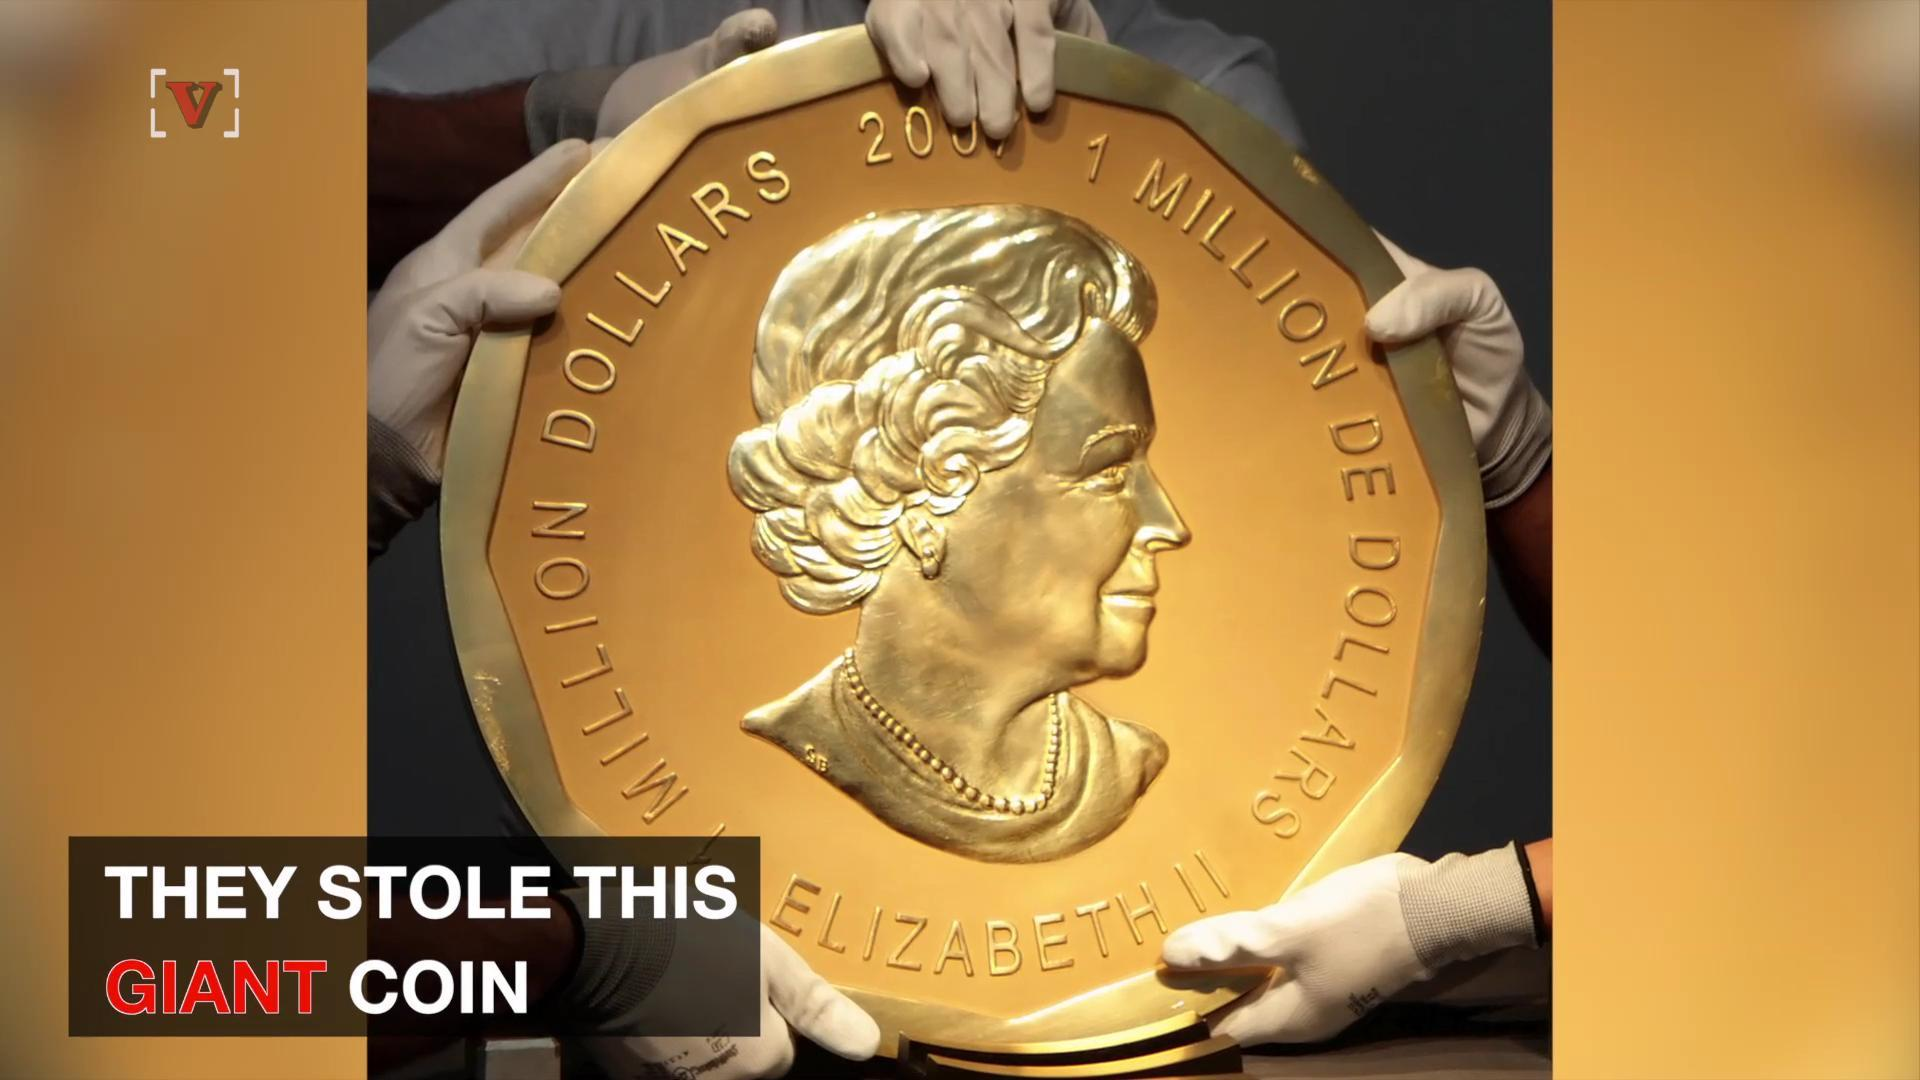 Giant Gold Coin Worth Millions Stolen